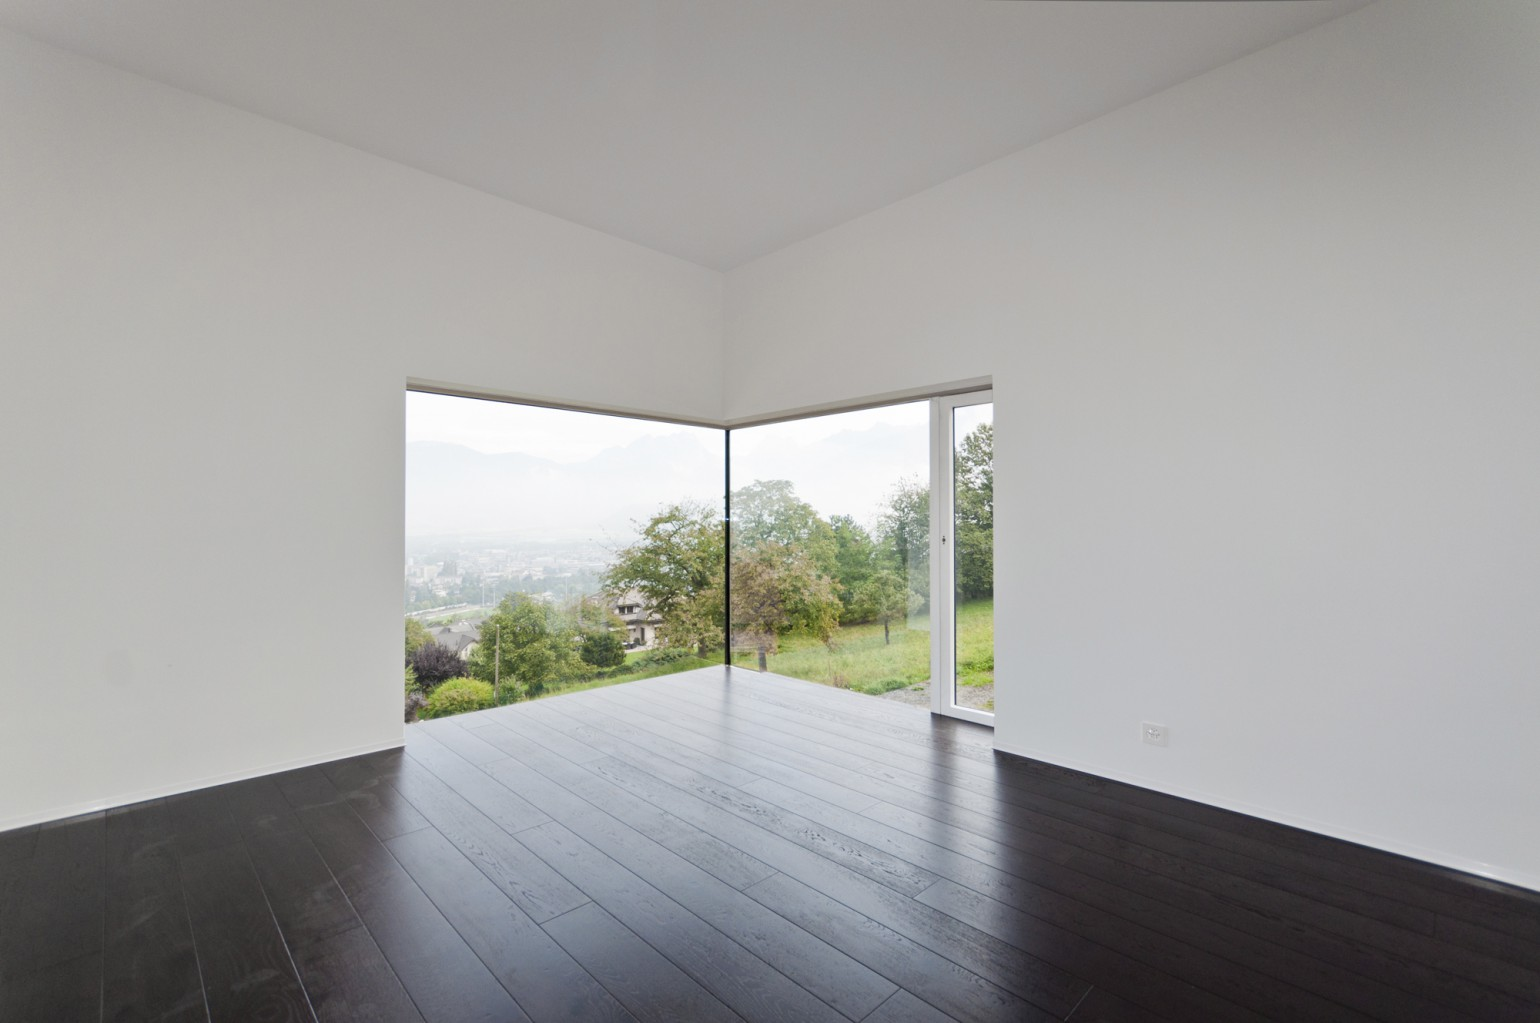 maison_catanese_choex_meyer_architecture_sion_06